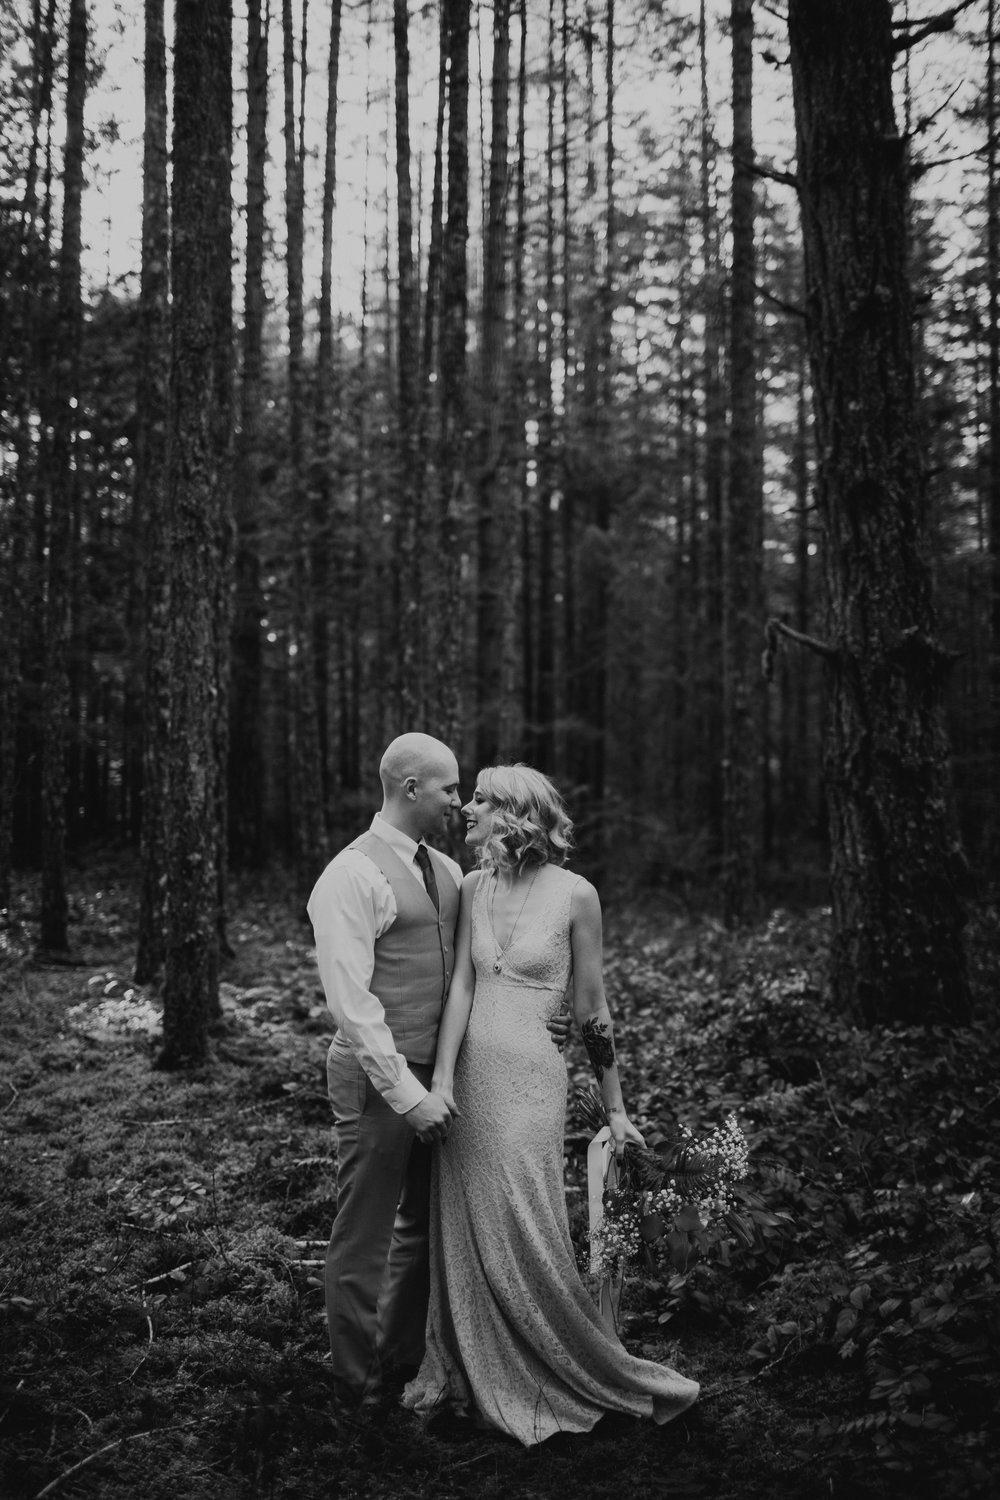 Port Angeles-PNW-Sequim-Portrait-wedding-elopement-photographer-kayladawnphoto-kayla dawn photography-olympic peninsula-portraiture26.jpg